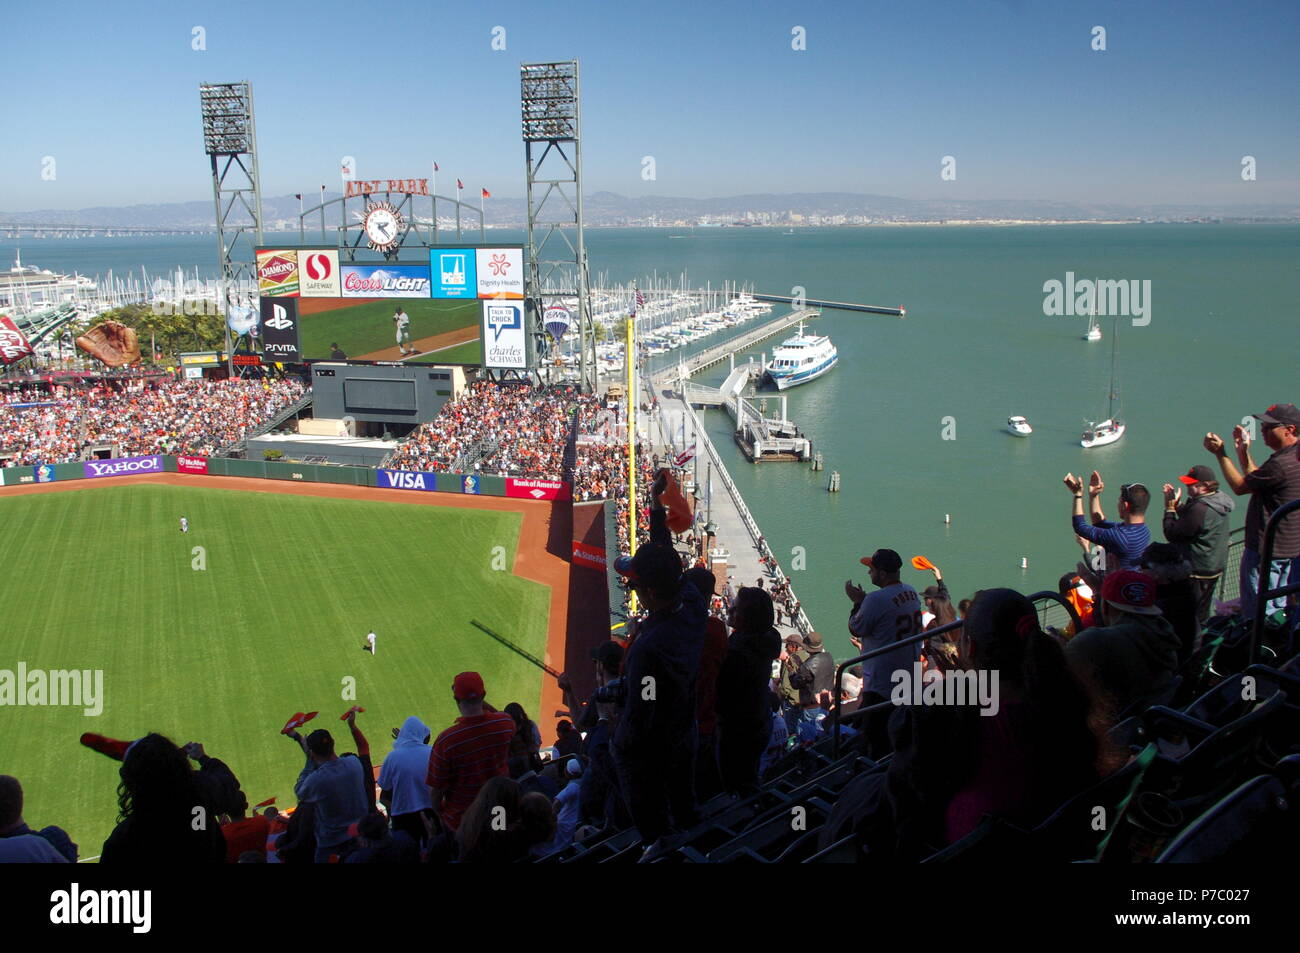 AT&T Park, a San Francisco Giants baseball game; the crowd applauds a home run. - Stock Image